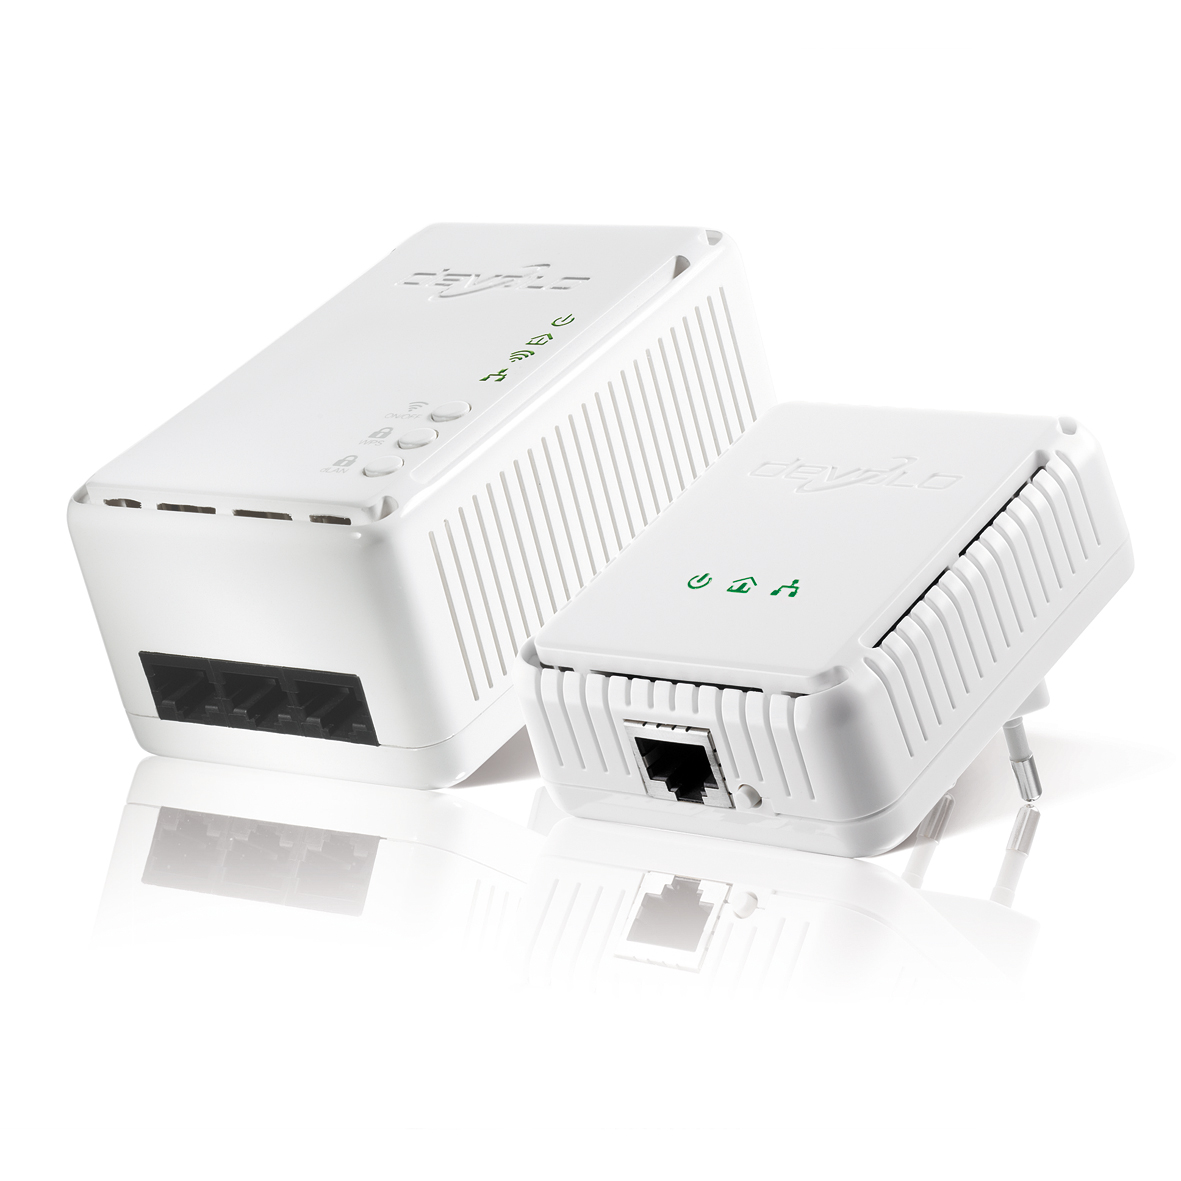 Devolo Powerline Starter Kit dLAN 200 AV Wireless N